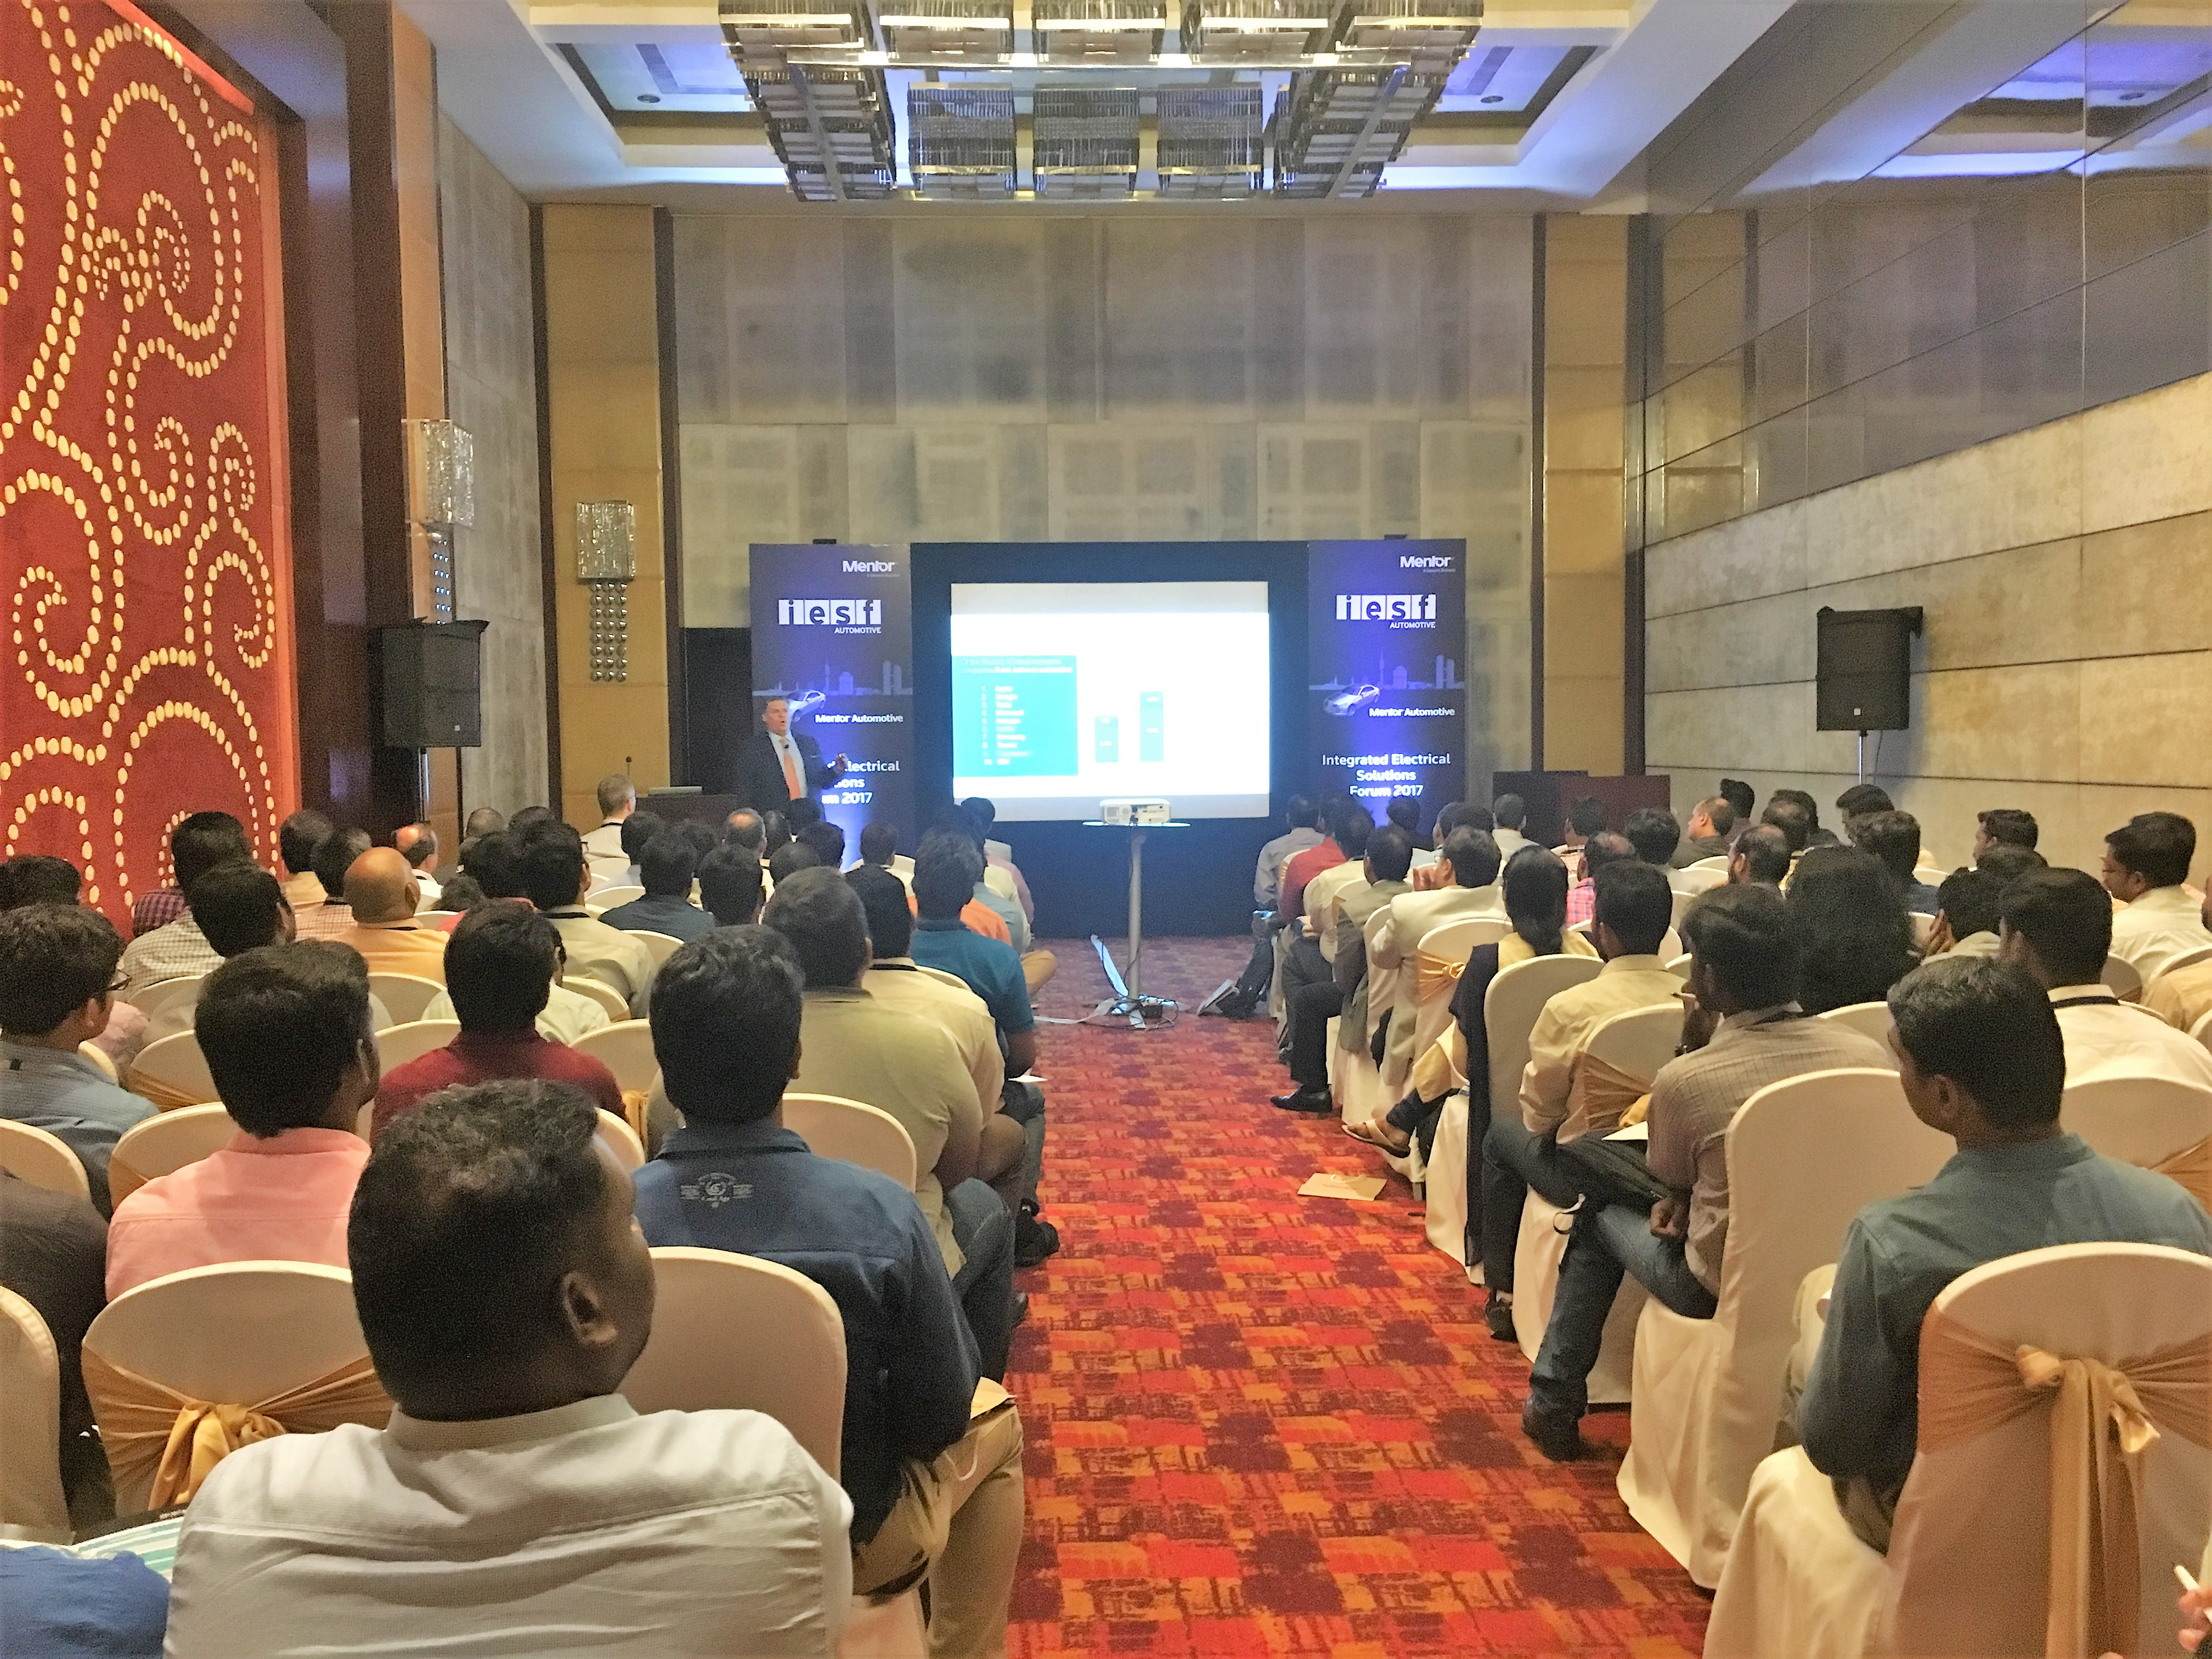 Not Just Whats In Capital For Me It Everyone Else Wiring Harness Industry Chennai Customer Presentations Generated A Lot Of Interest From The Attendees